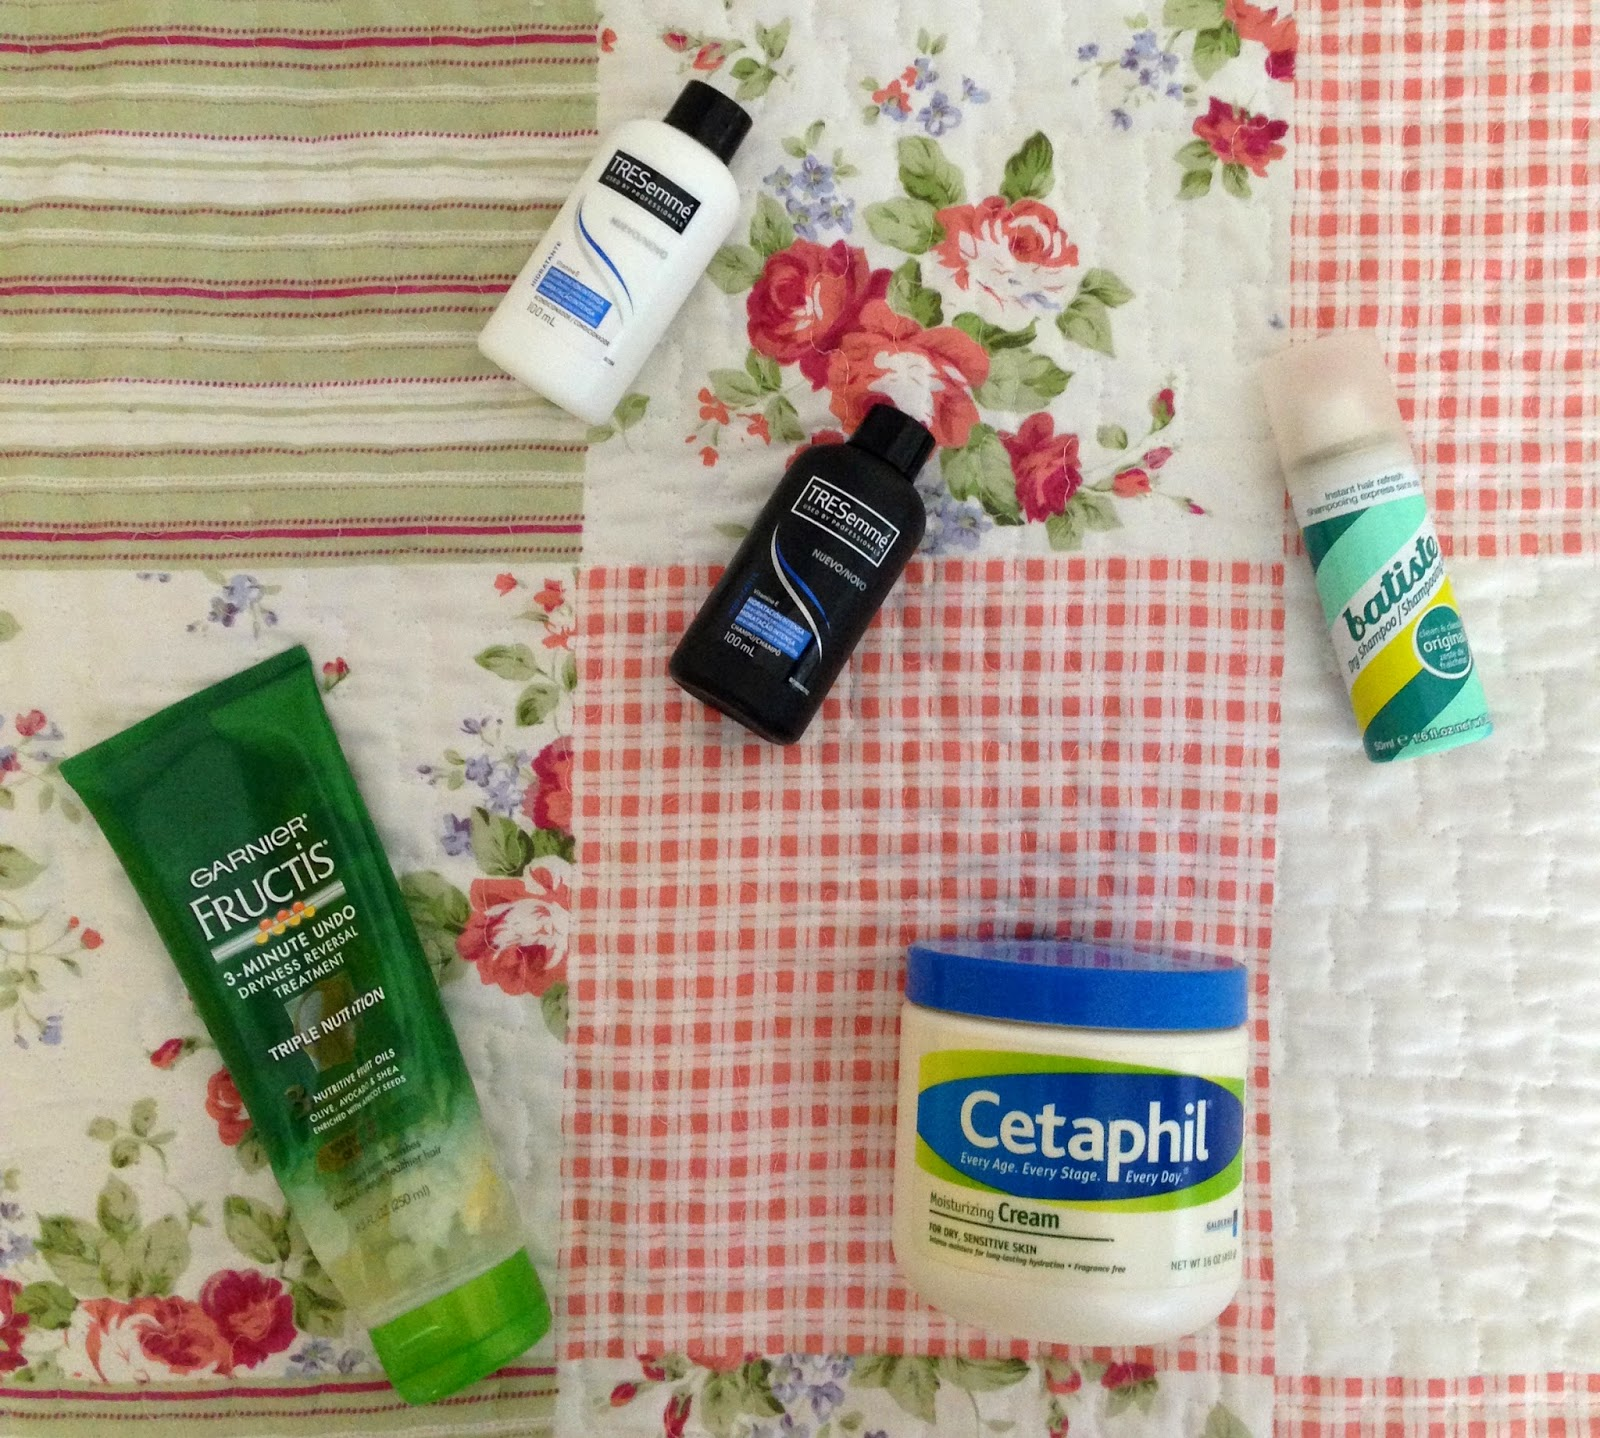 letmecrossover_blog_blogger_michele_mattos_blogueira_brazilian_brasileira_empties_products_I've_finished_up_beauty_trash_hit_and_misses_cetaphil_mango_fructis_tresemme_shampoo_dry_baptiste_cruelty_free_animal_testing